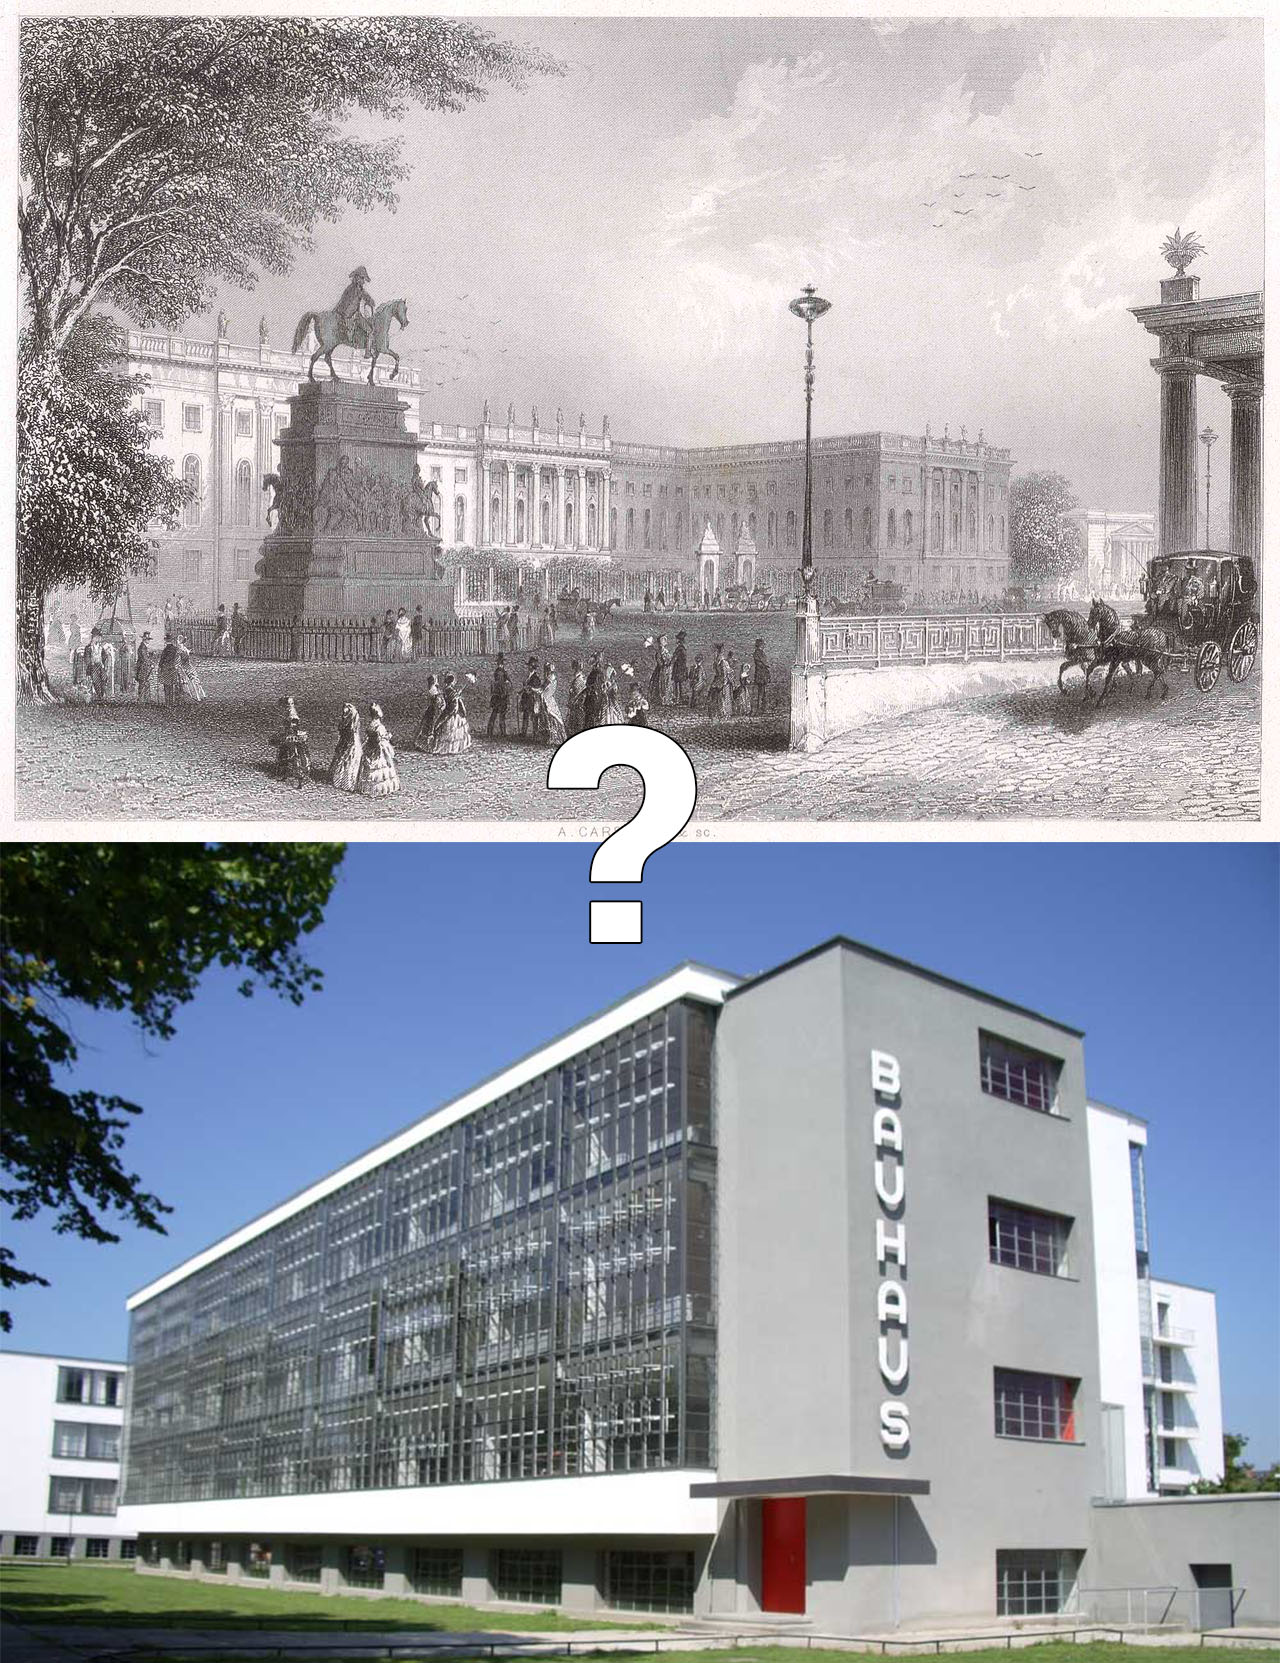 The University of Berlin, built in 1810 and The Bauhaus, Dessau, built in